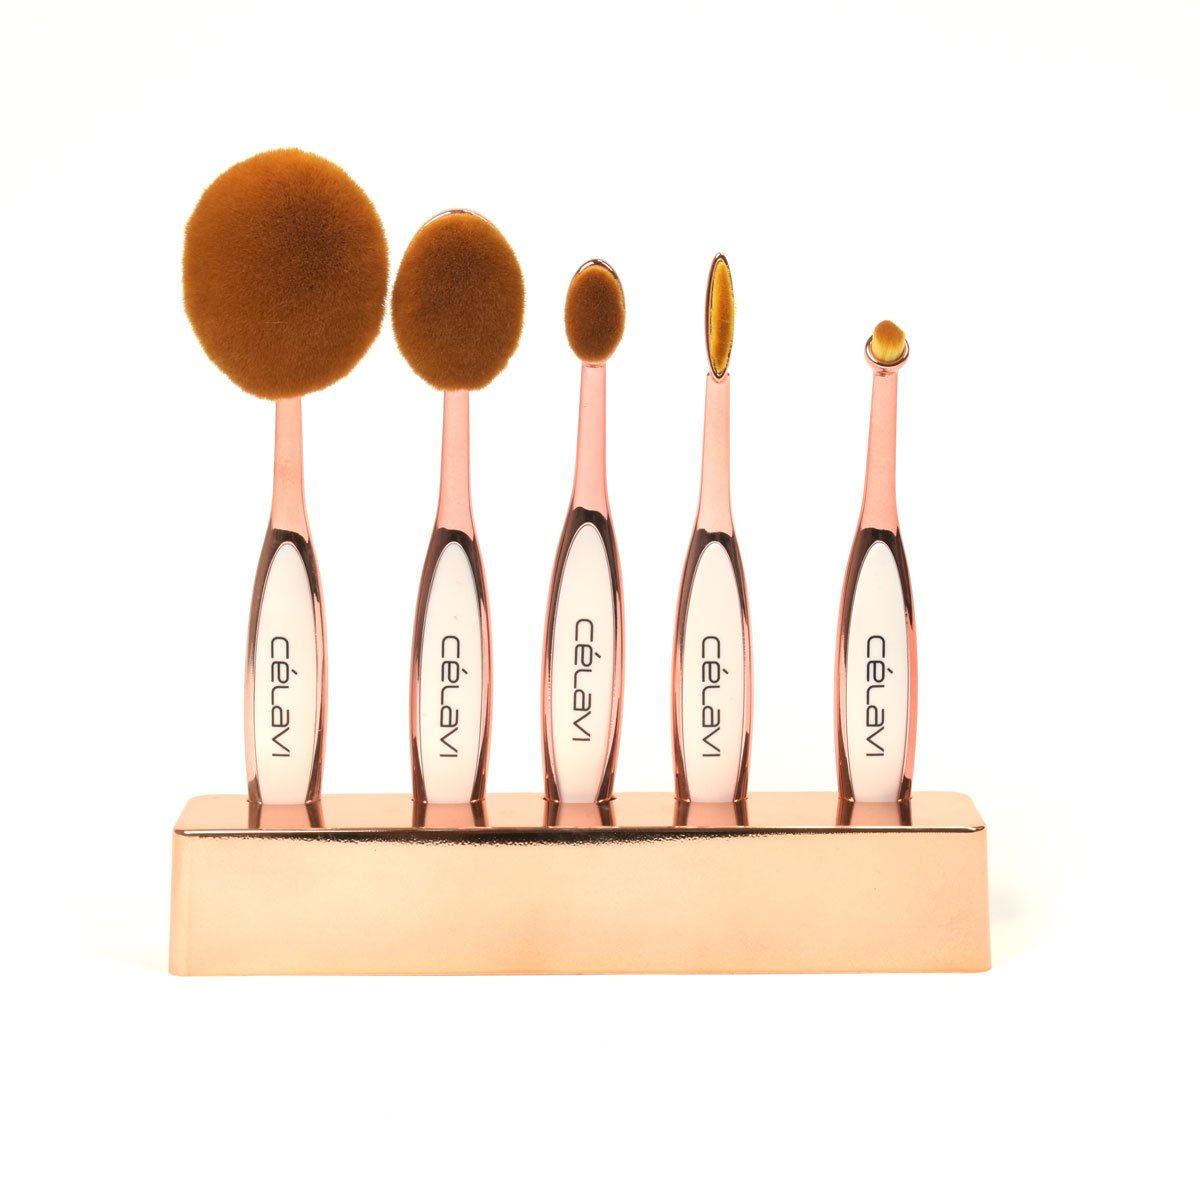 Celavi Oval Makeup Brush Professional Cosmetic Tools for Face, Foundation, Creams, Liquids, Moisturizer, Powder, Blush, Concealer, Contour-Beauty-Celavi Cosmetics-5 Brush Set-Bronze-Celavi Cosmetics